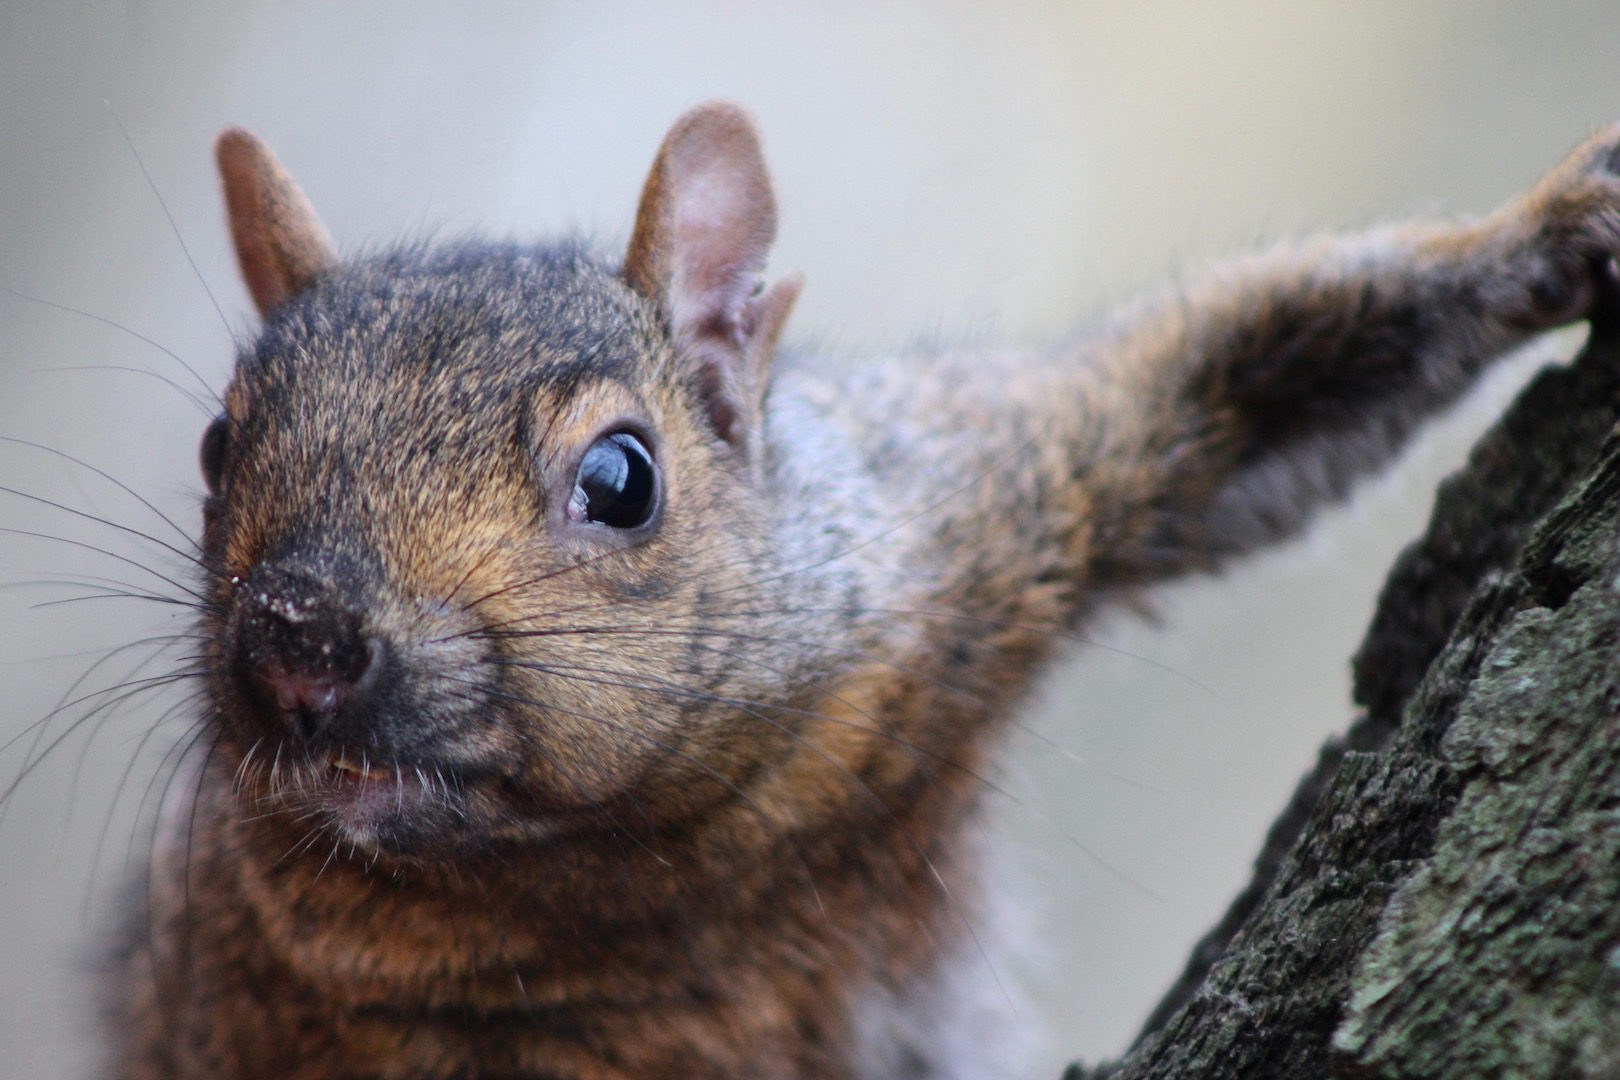 Photographer: Rupert Mackie   Country: Canada  Title: The Squirrel's Gaze